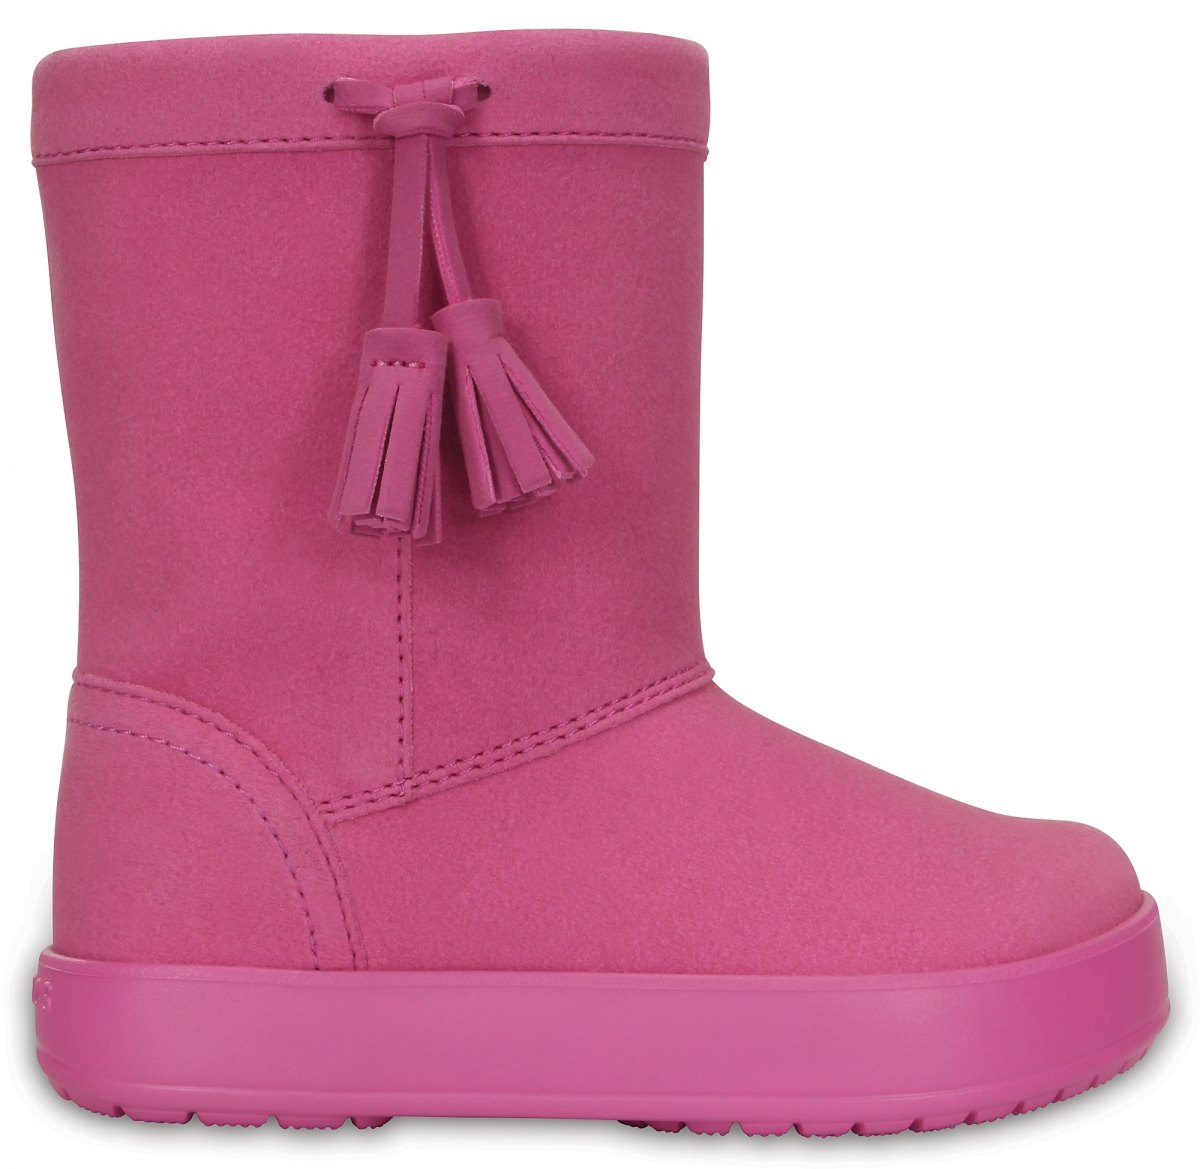 Crocs LodgePoint Boot Kids - Party Pink, J2 (33-34)